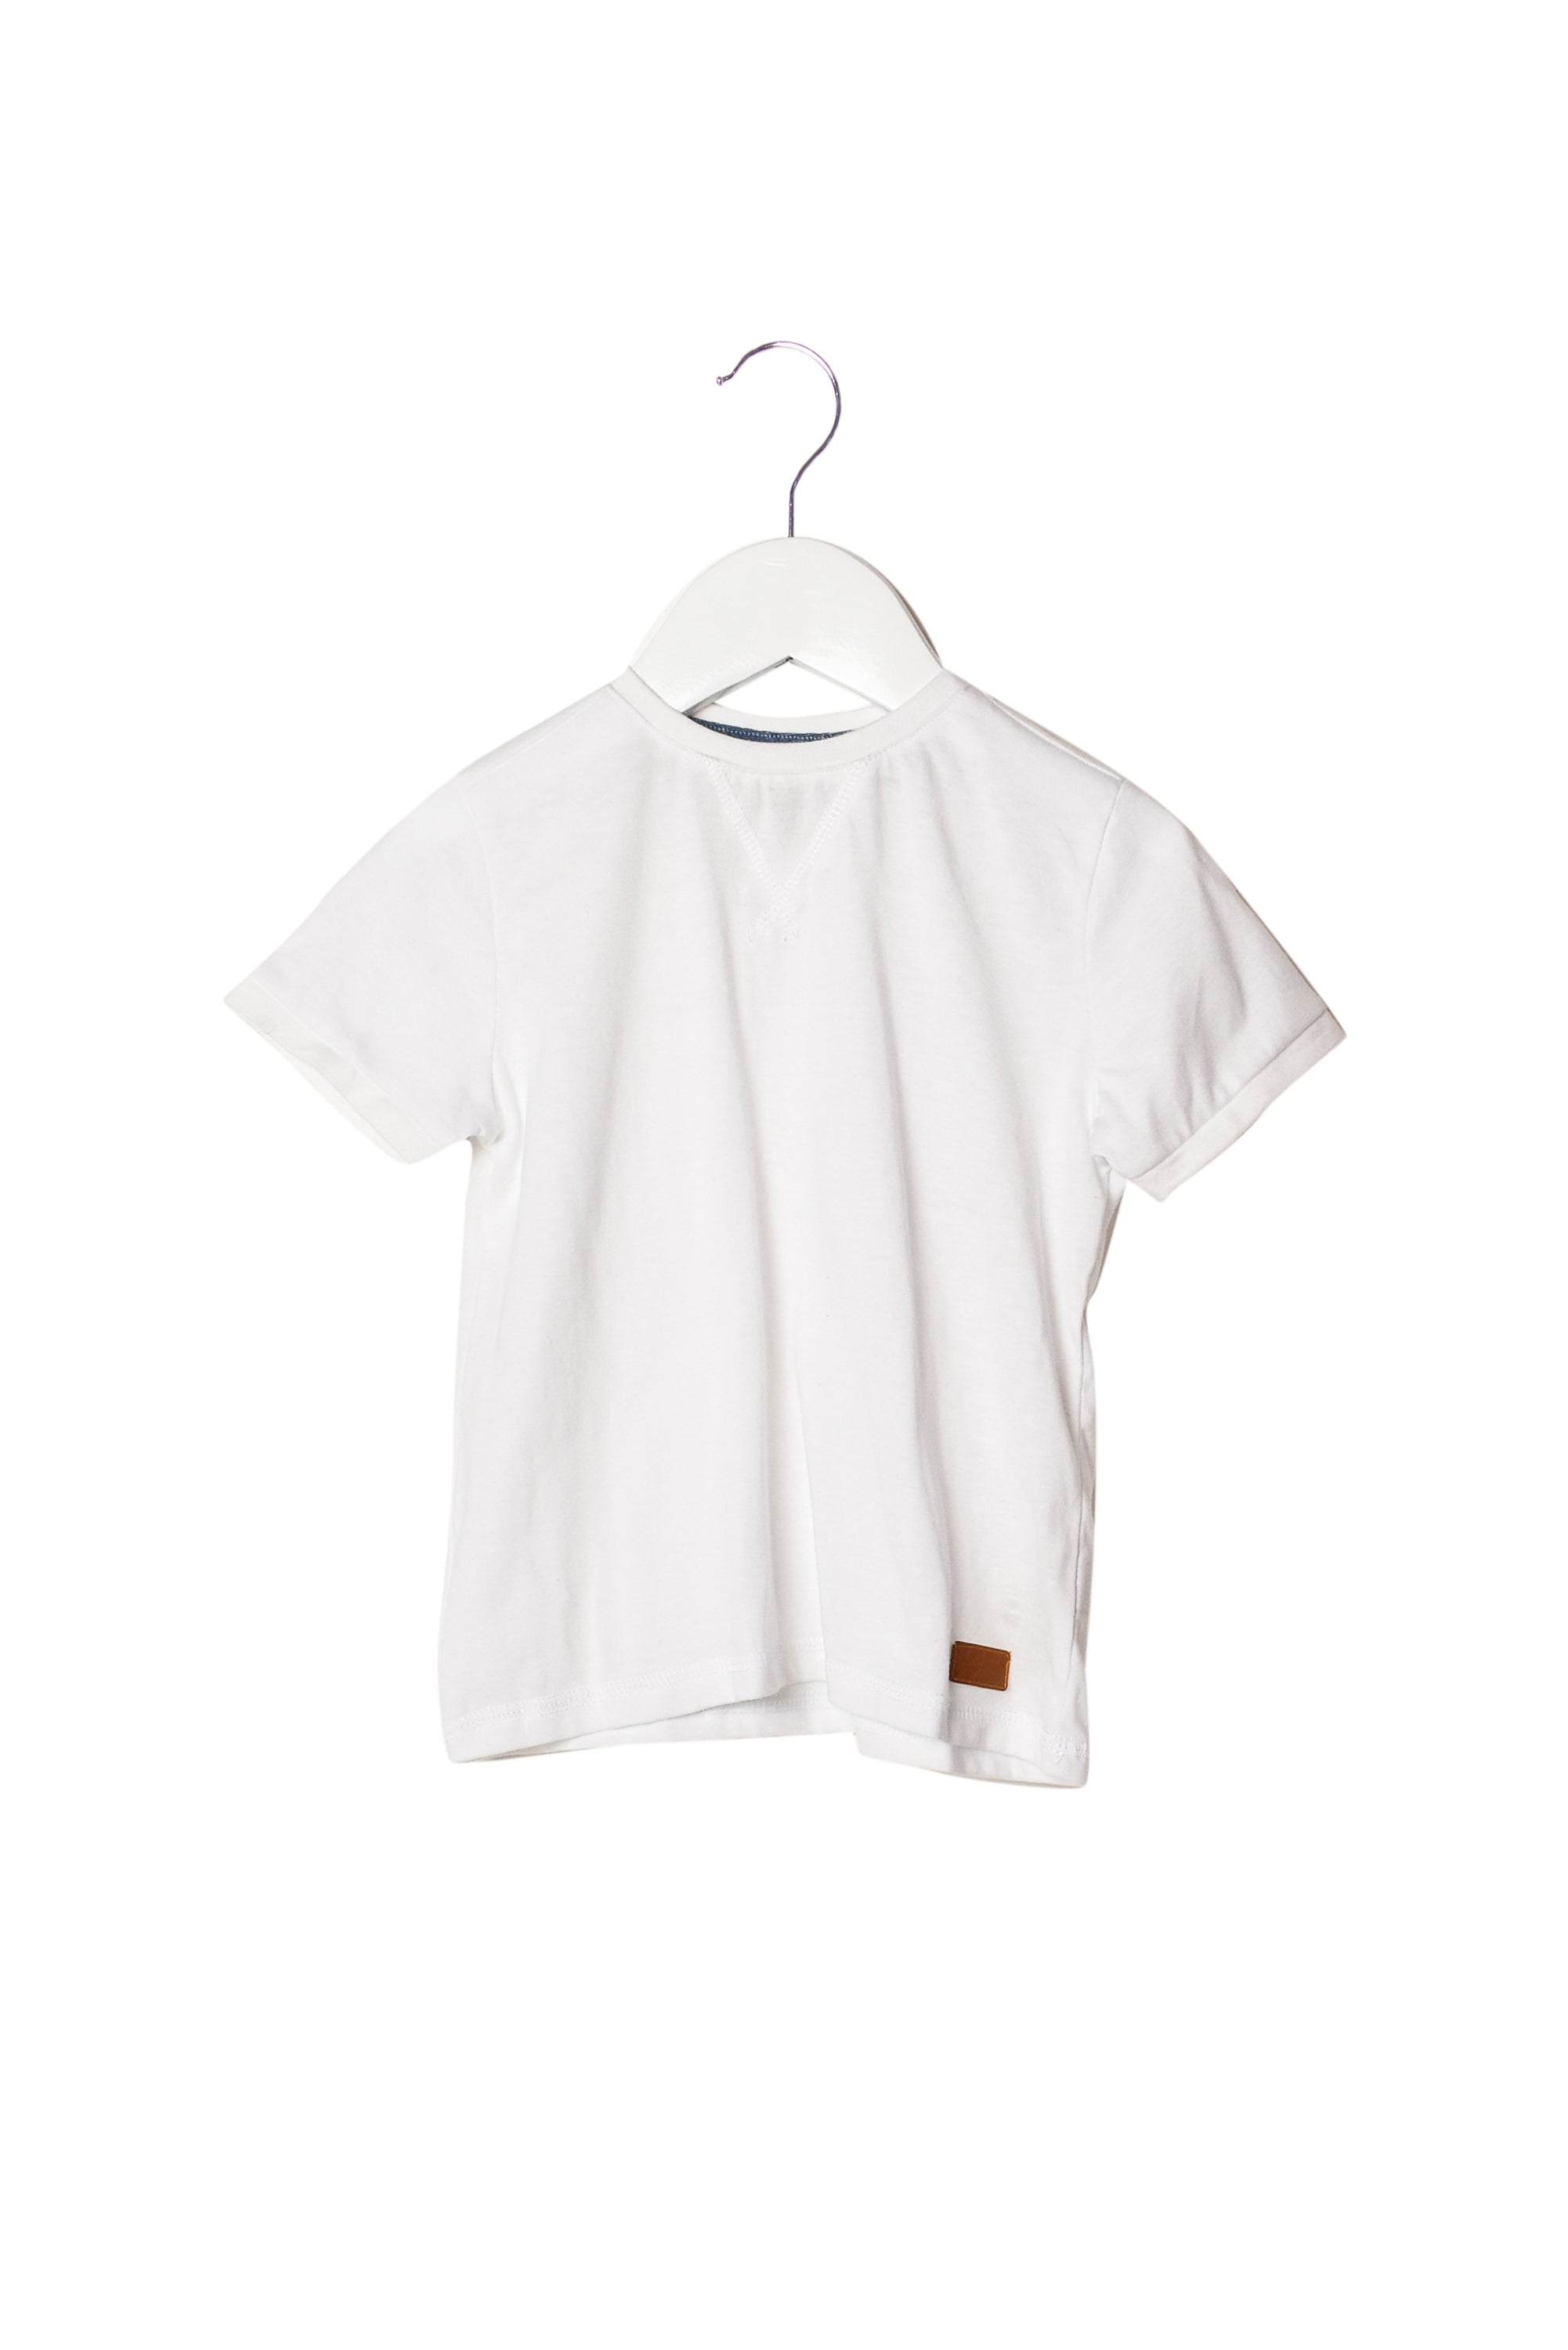 10007738 7 For All Mankind Kids~ T-Shirt 4T at Retykle